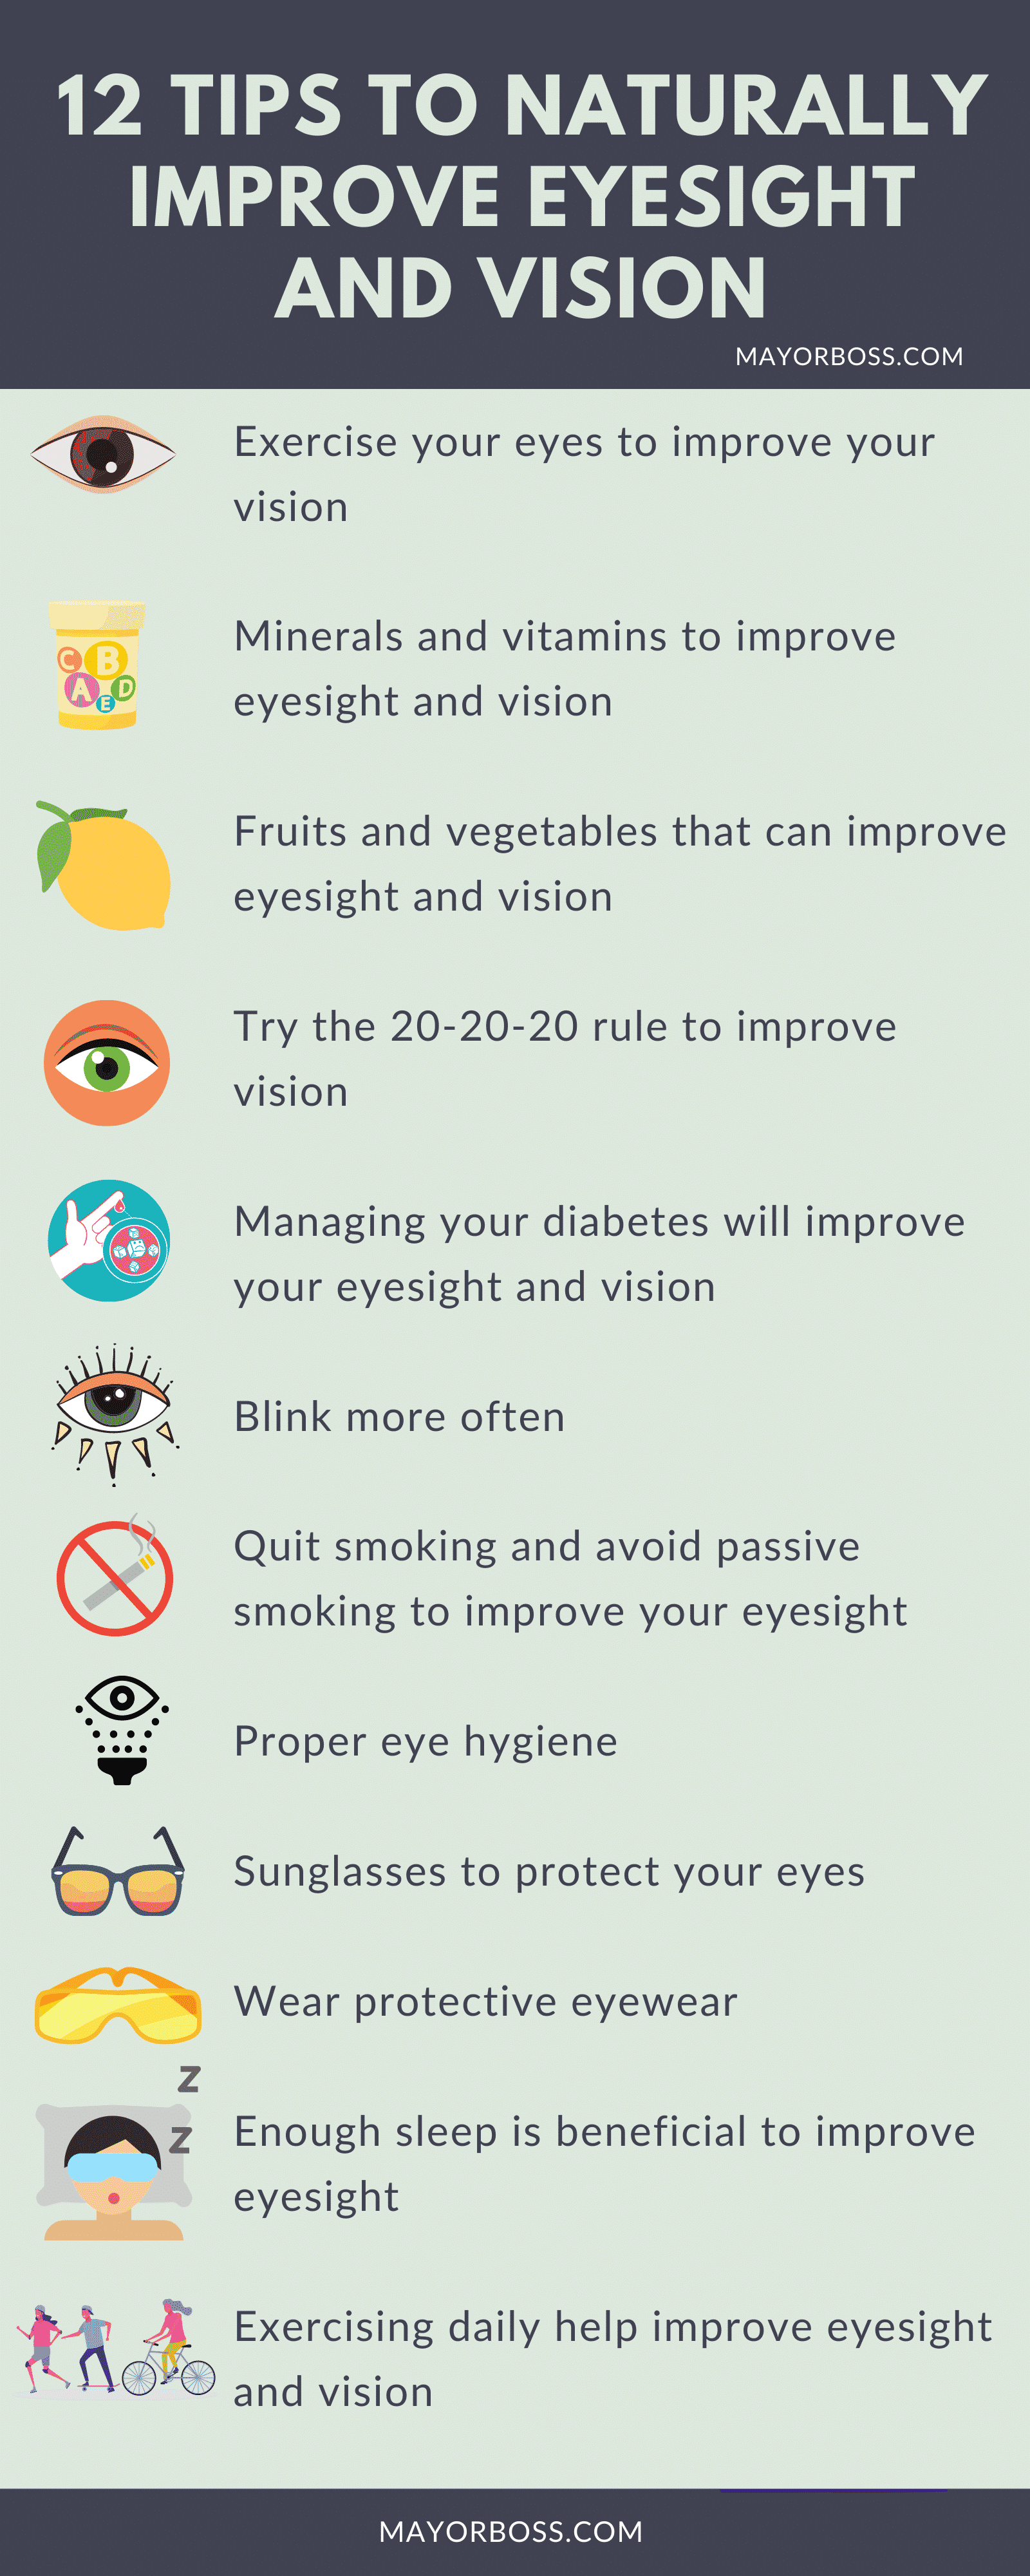 12 Tips To Naturally Improve Eyesight And Vision